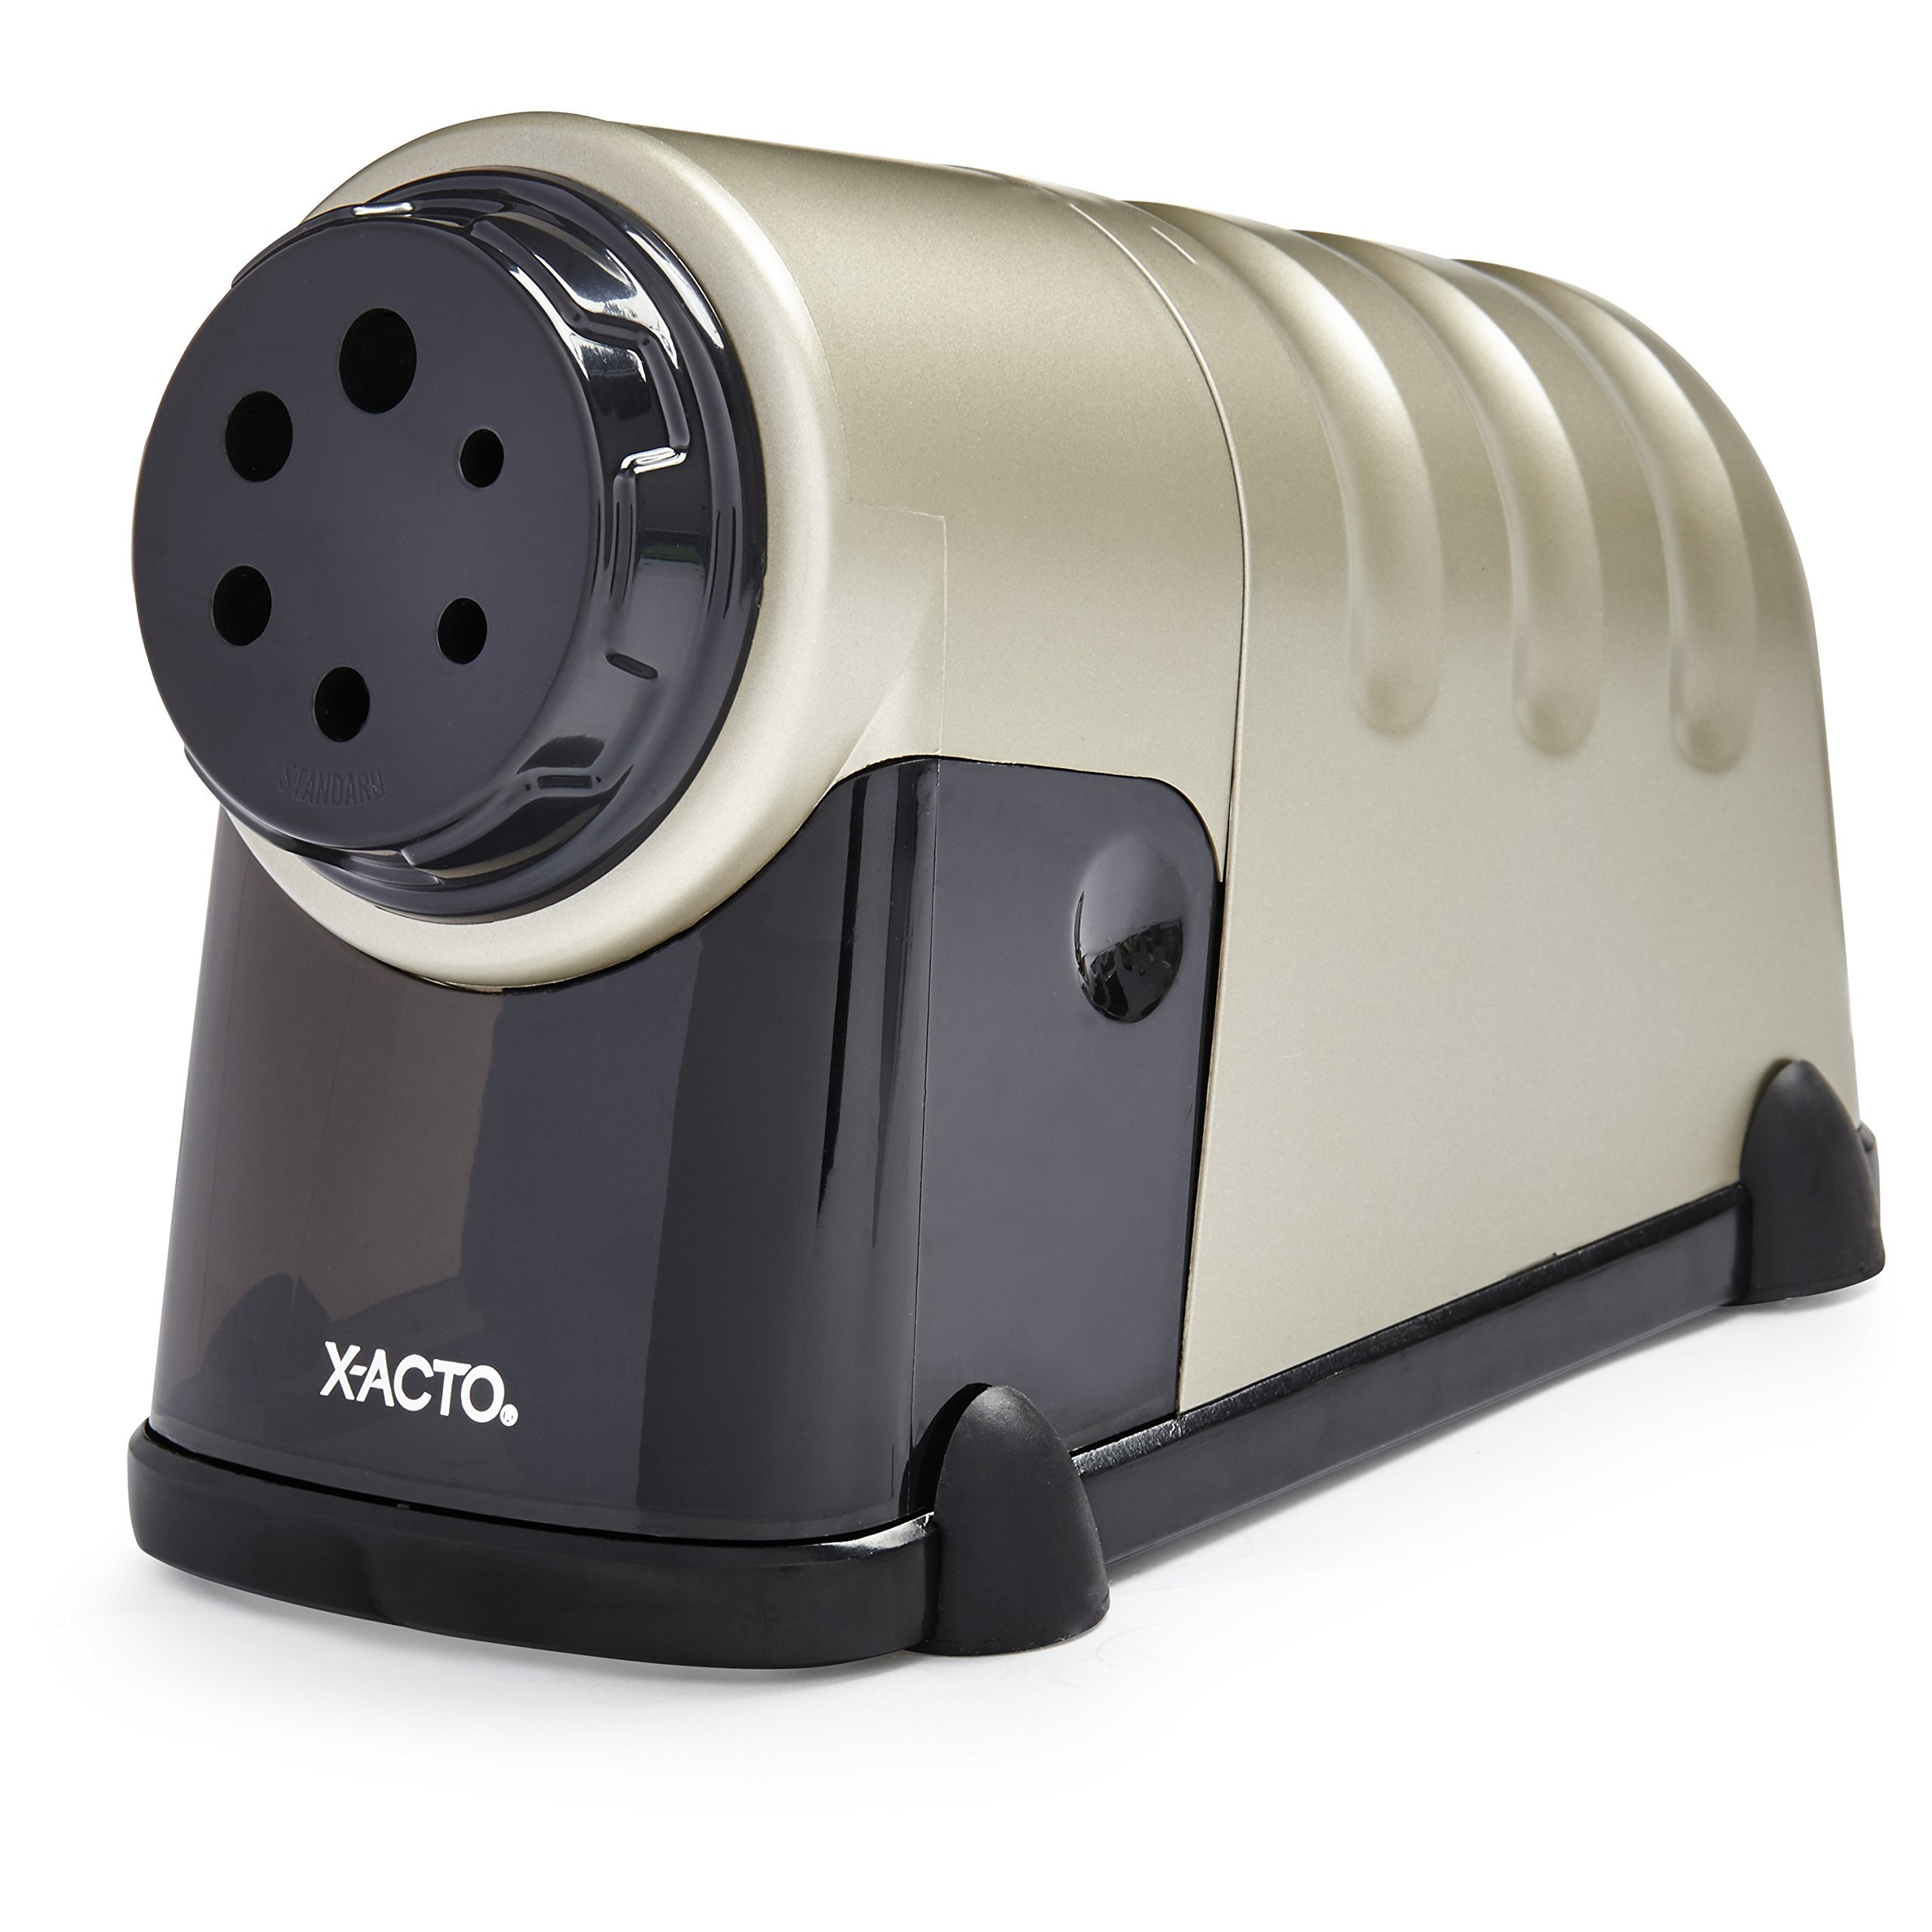 X-ACTO High Volume Commercial Electric Pencil Sharpener, Model 41, Beige by X-Acto